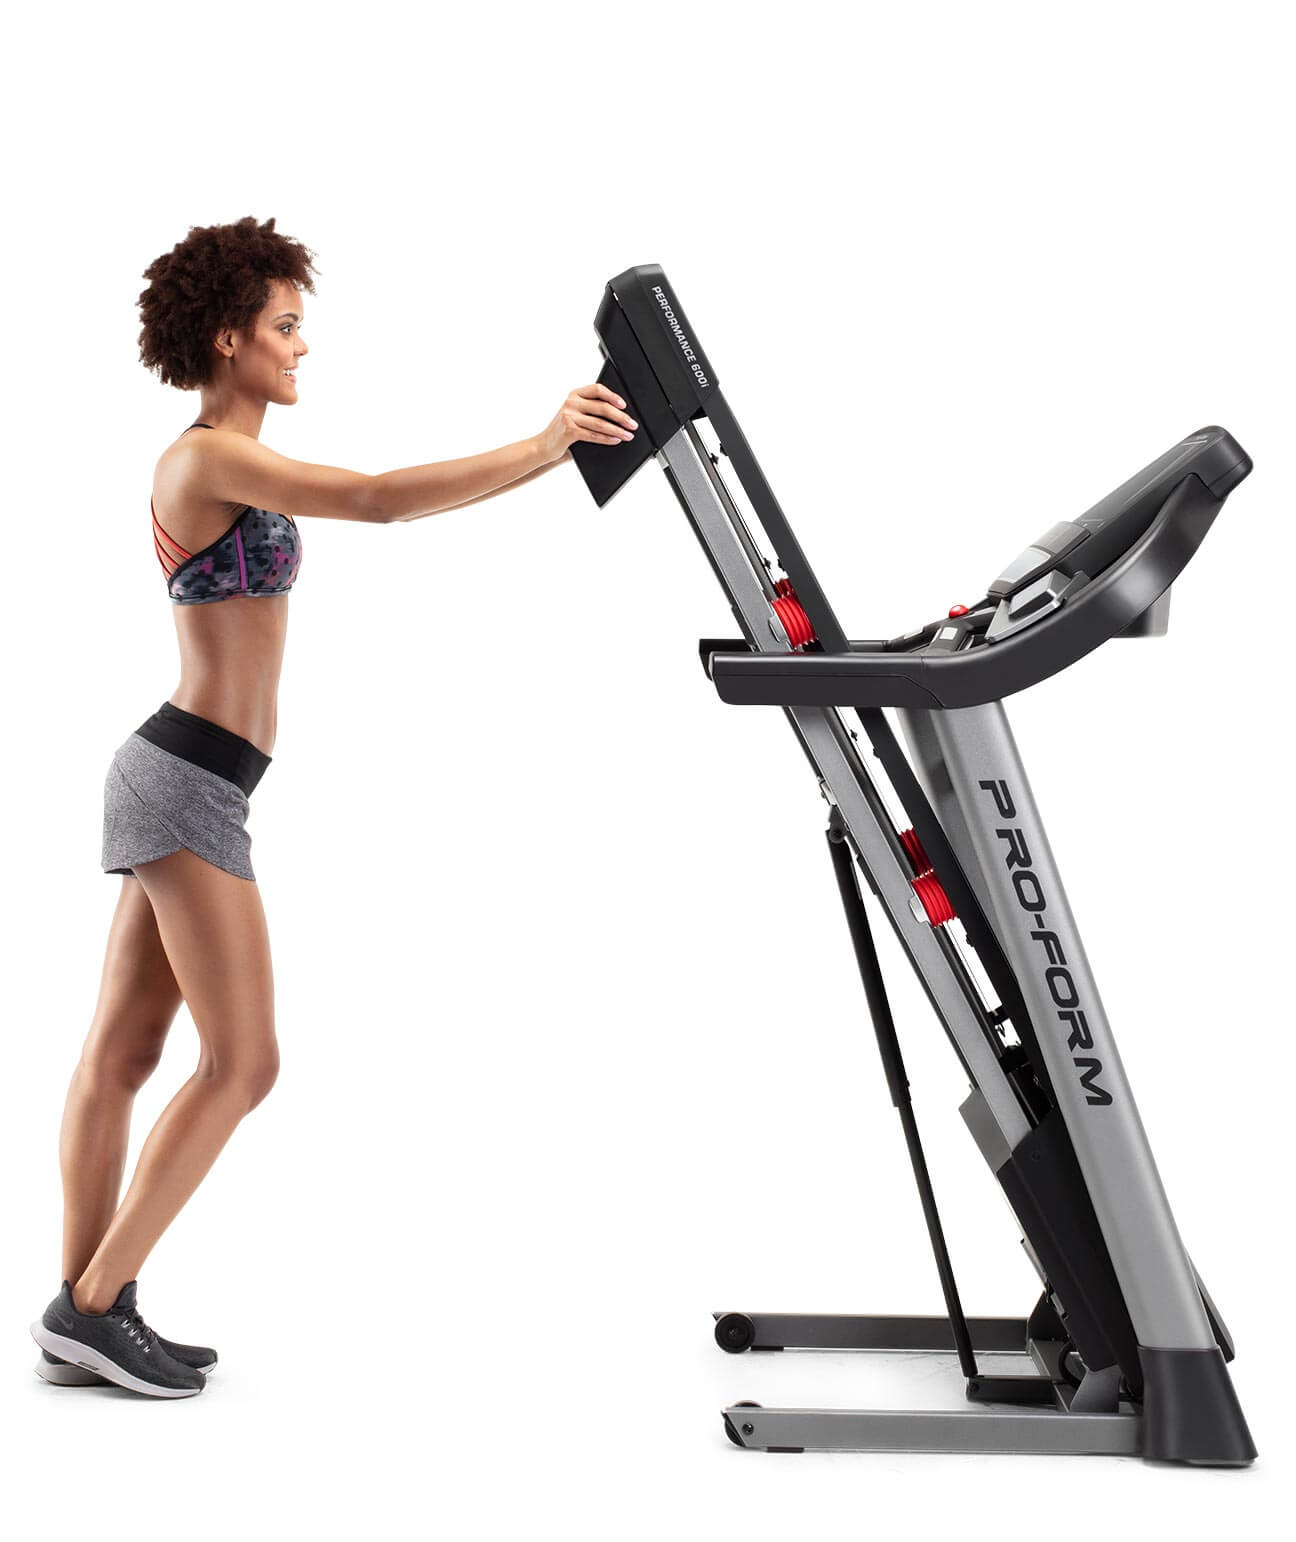 woman folding the performance 600i treadmill